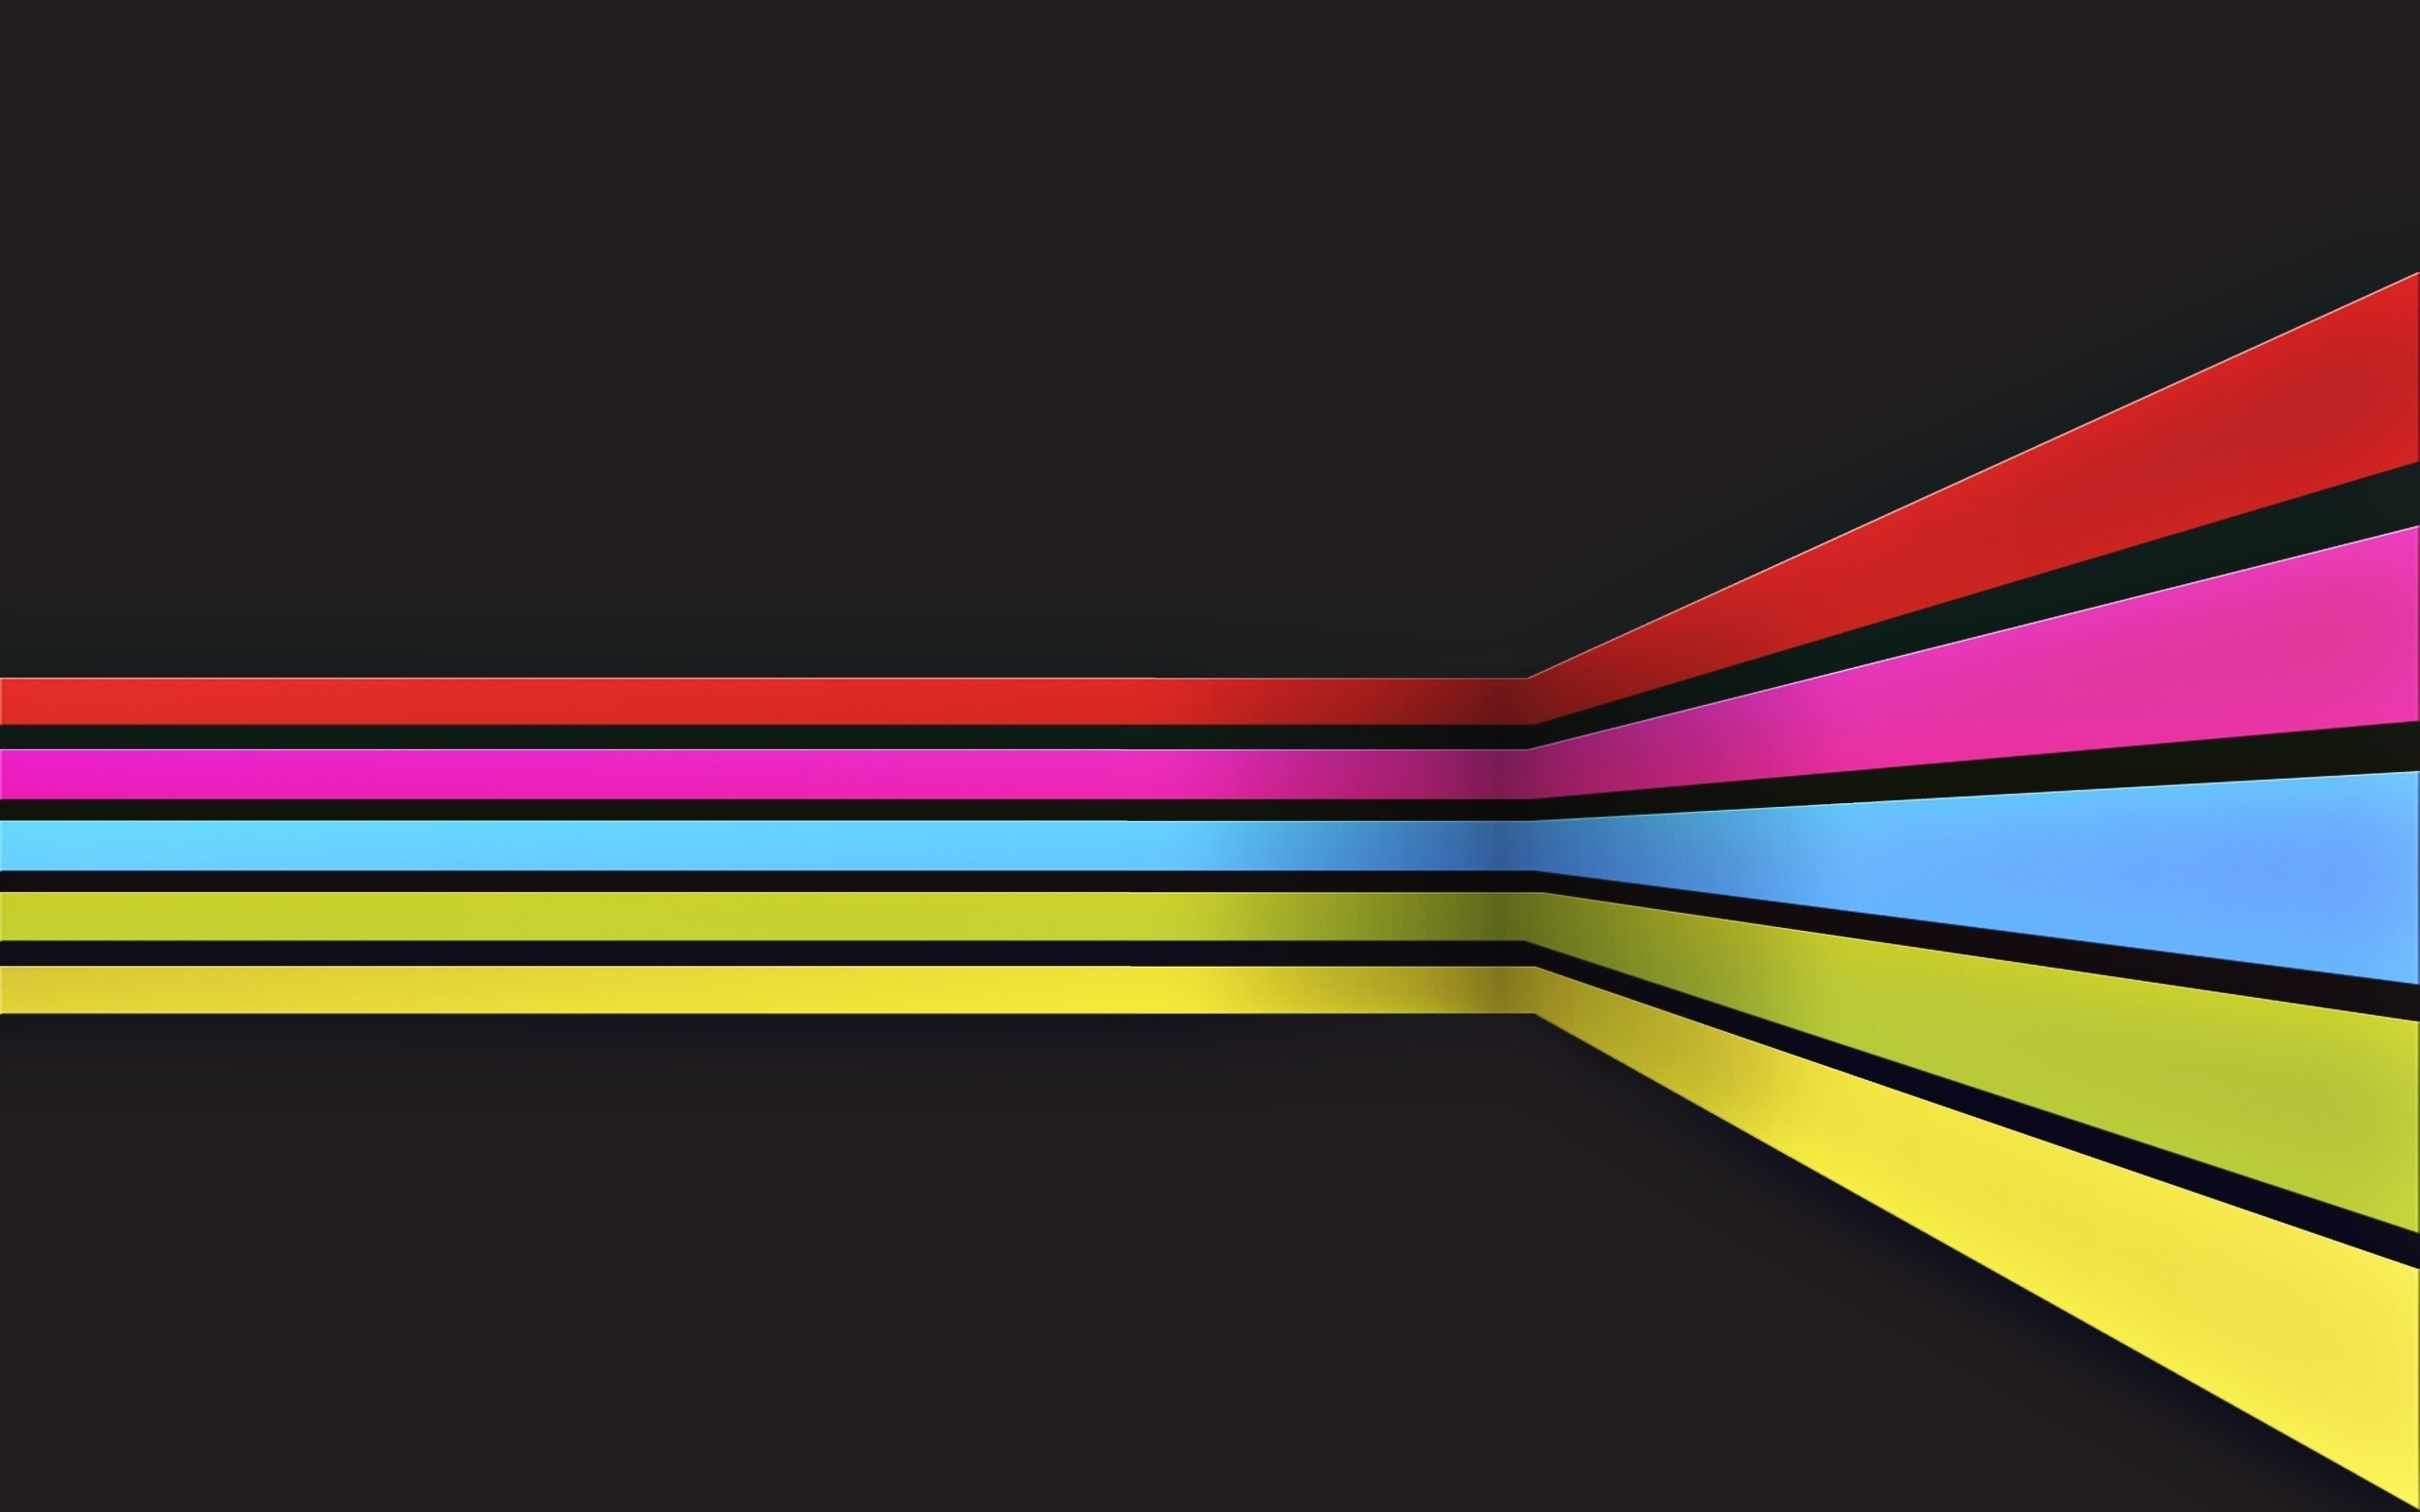 Abstract Lines Hd